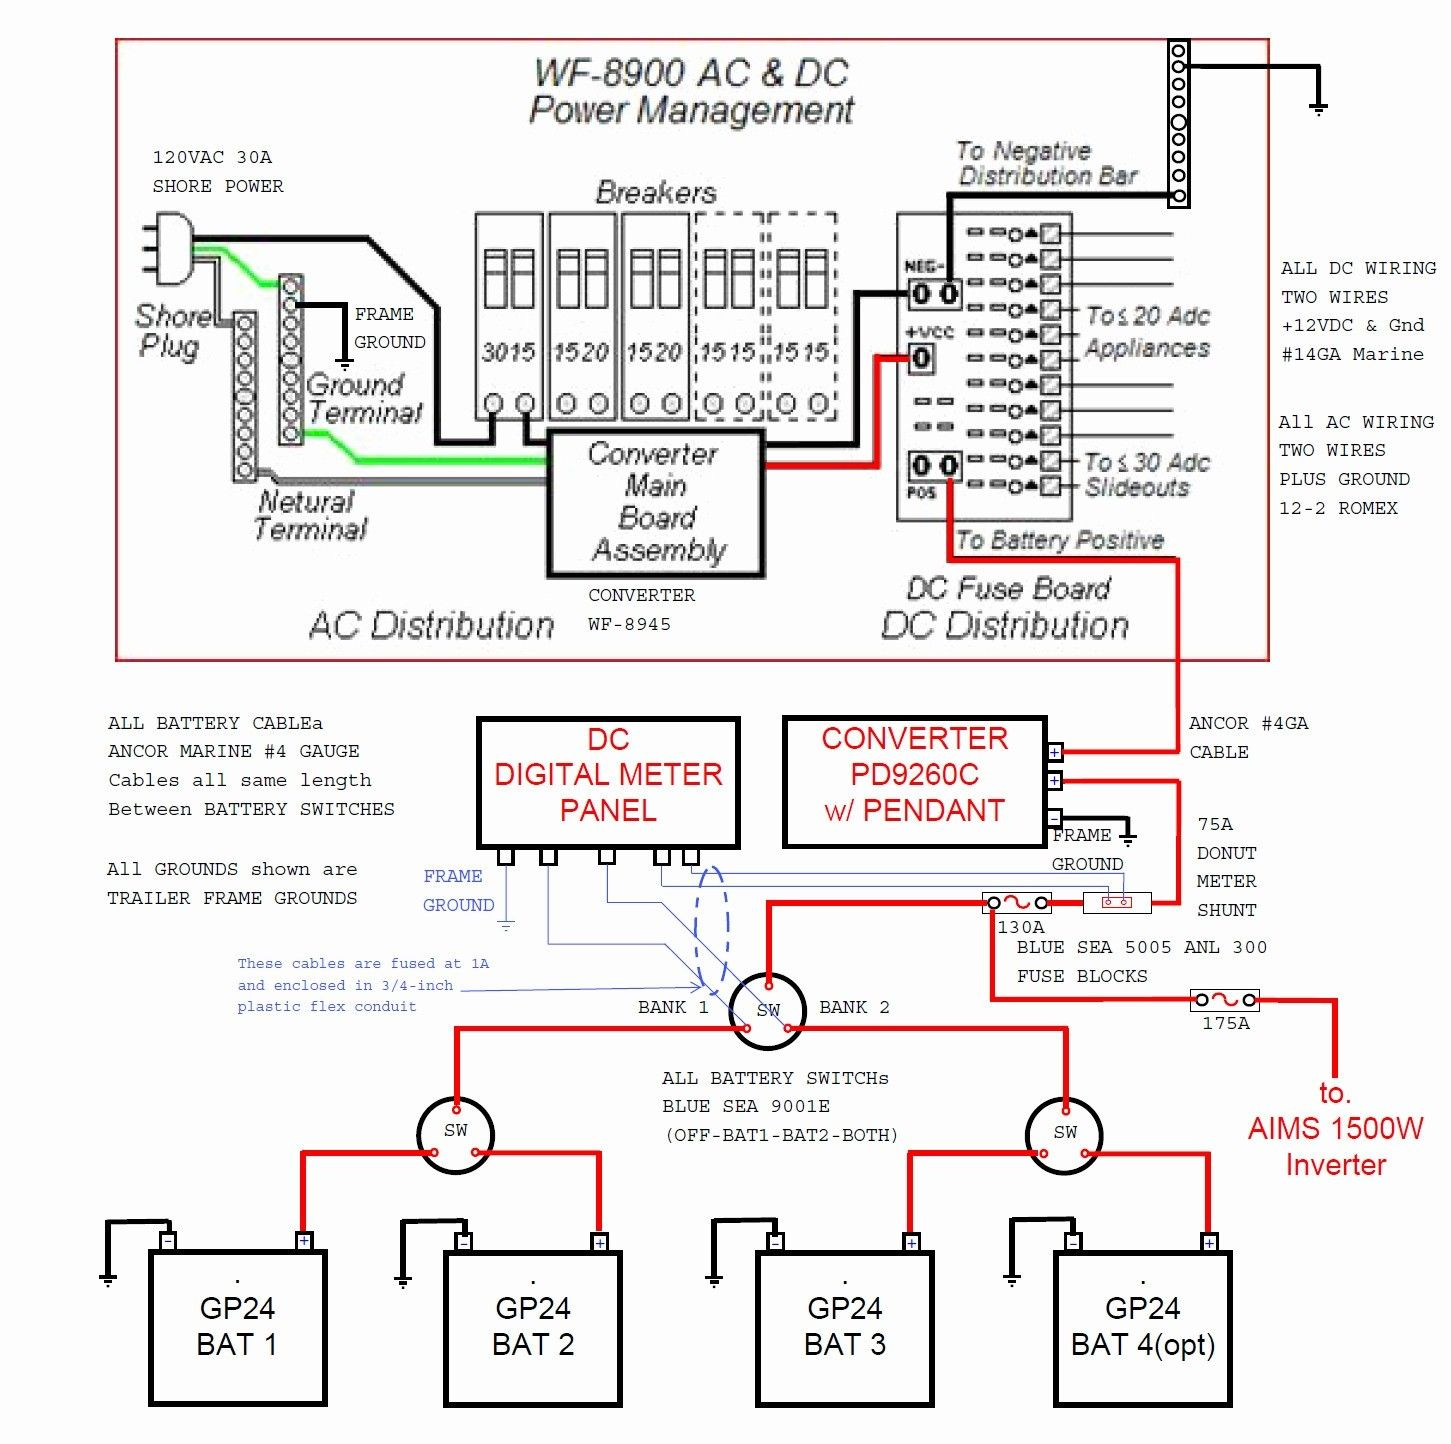 50 Amp Rv Outlet Wiring Diagram in 2020 Trailer wiring